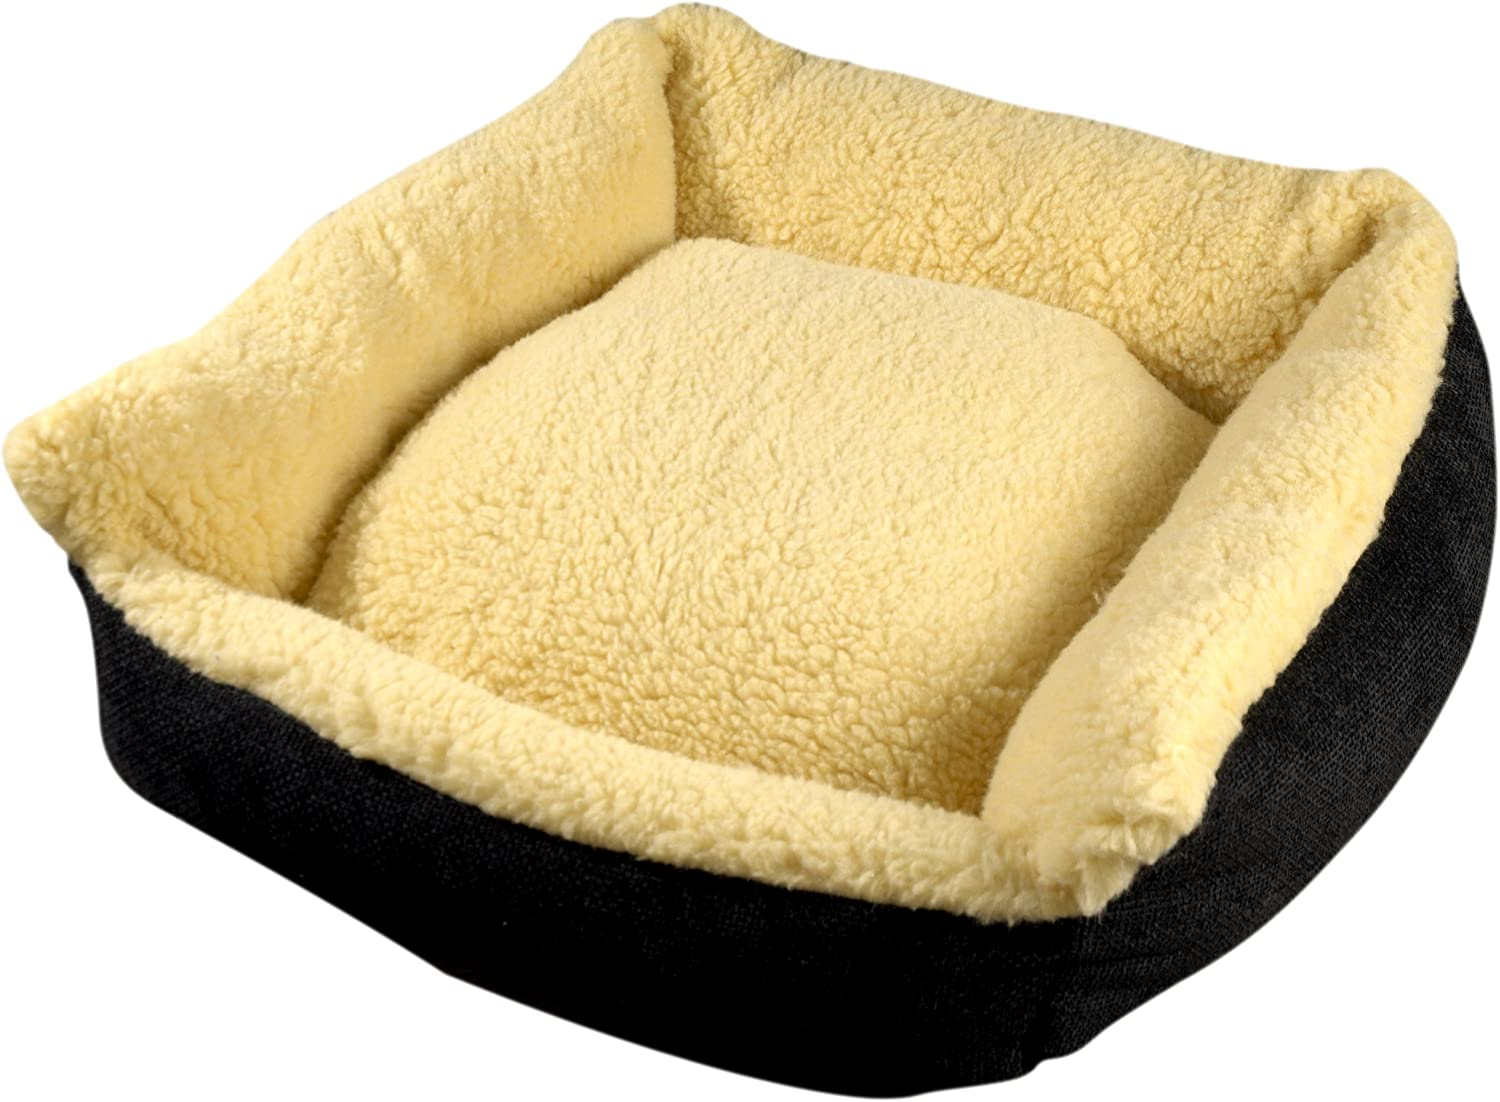 Bronte Glen Senior gold 7 Plus Cosy Pet Bed, Medium, Wheat